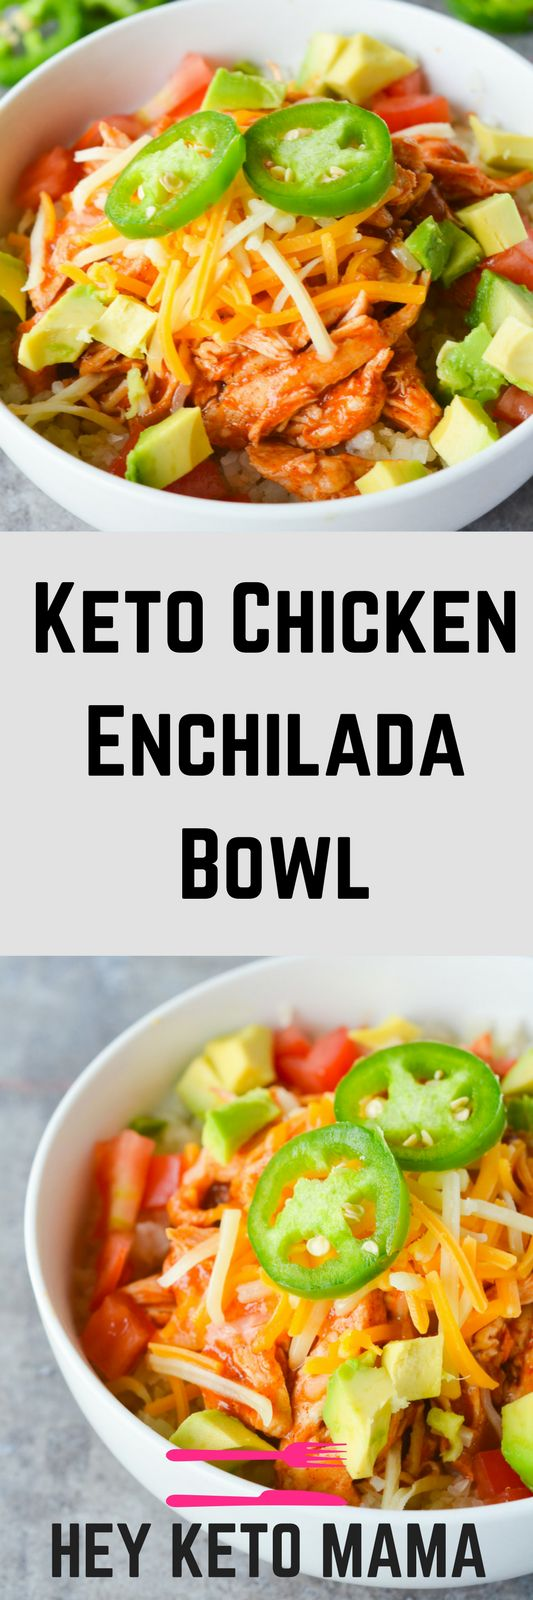 This Keto Chicken Enchilada Bowl is a low carb twist on a Mexican favorite! It's...